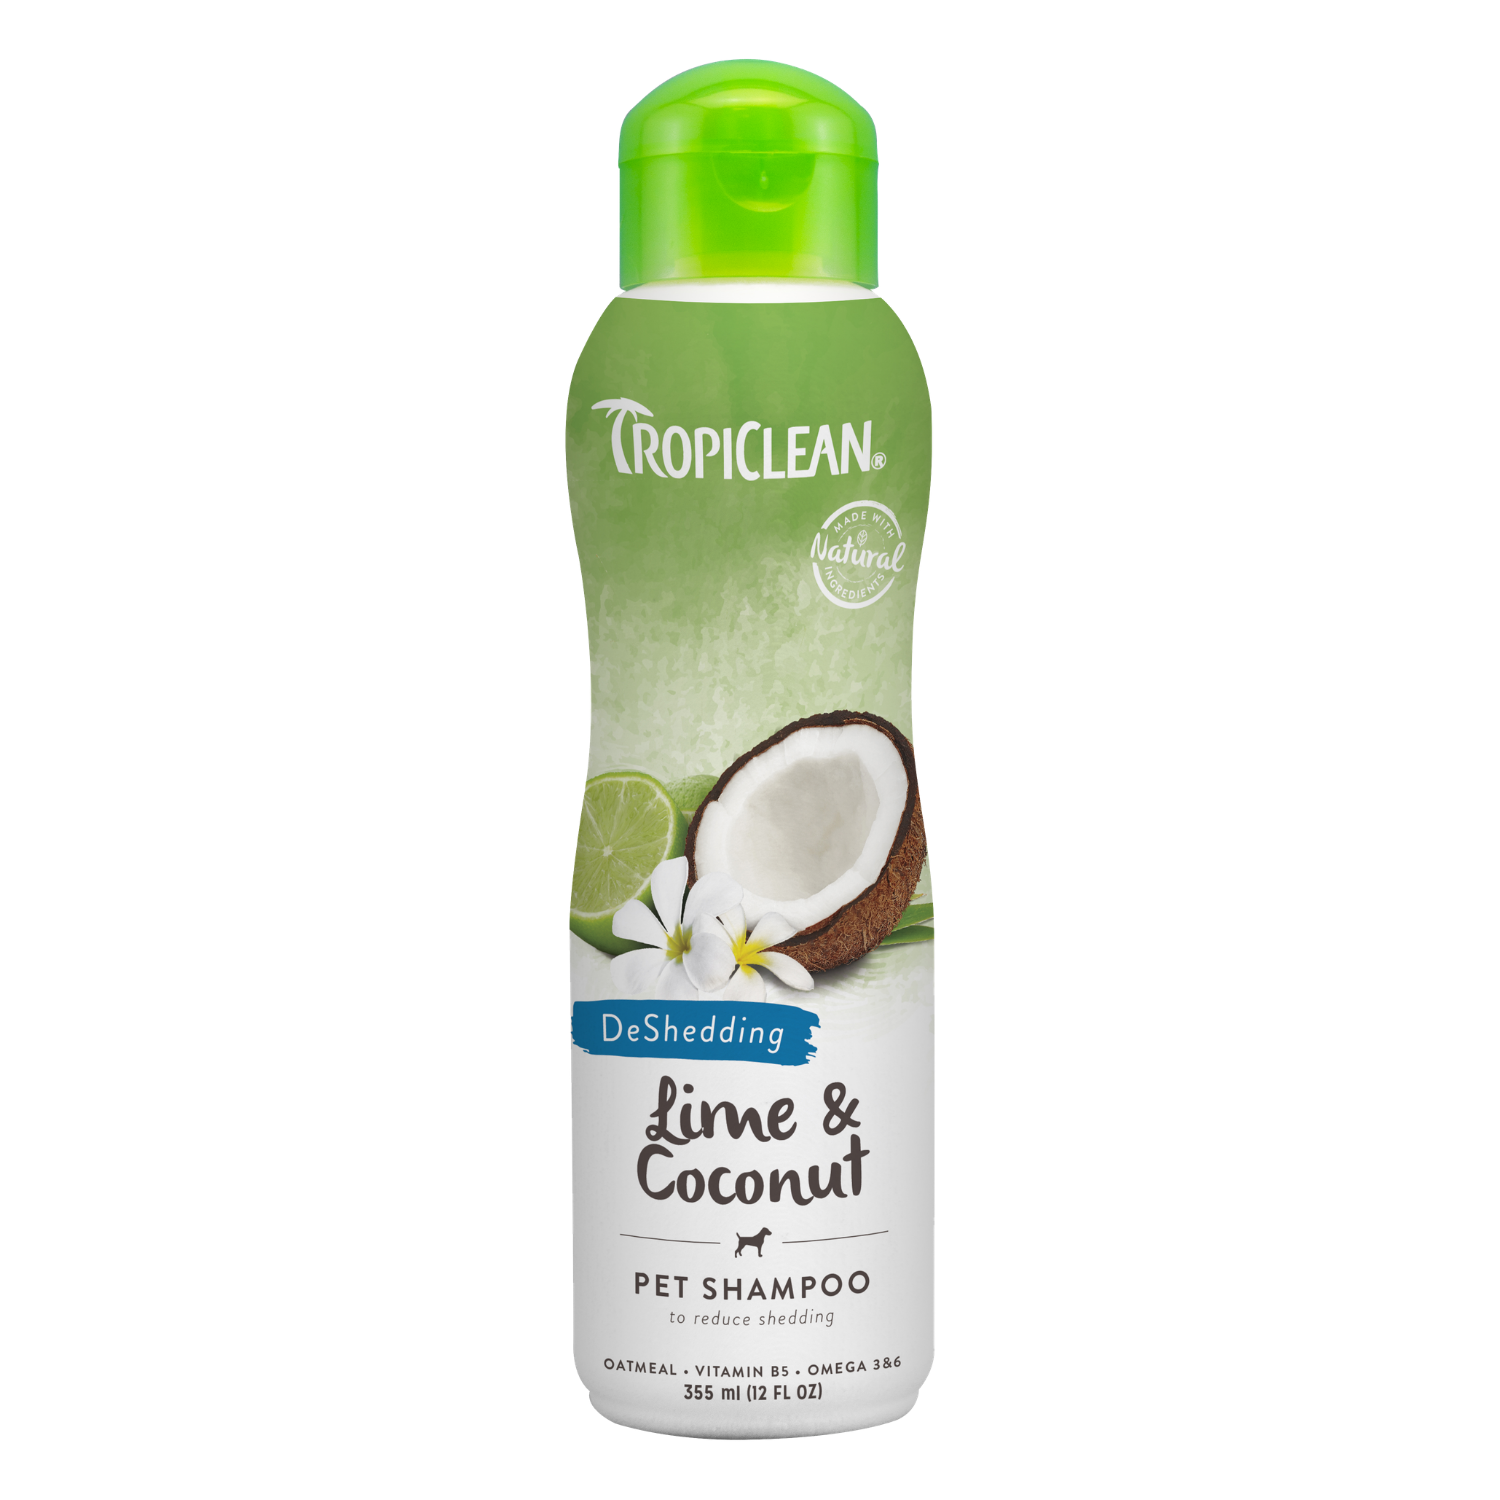 Tropiclean Lime & Coconut Pet Shampoo (DeShedding) - 355ml / 3.79L